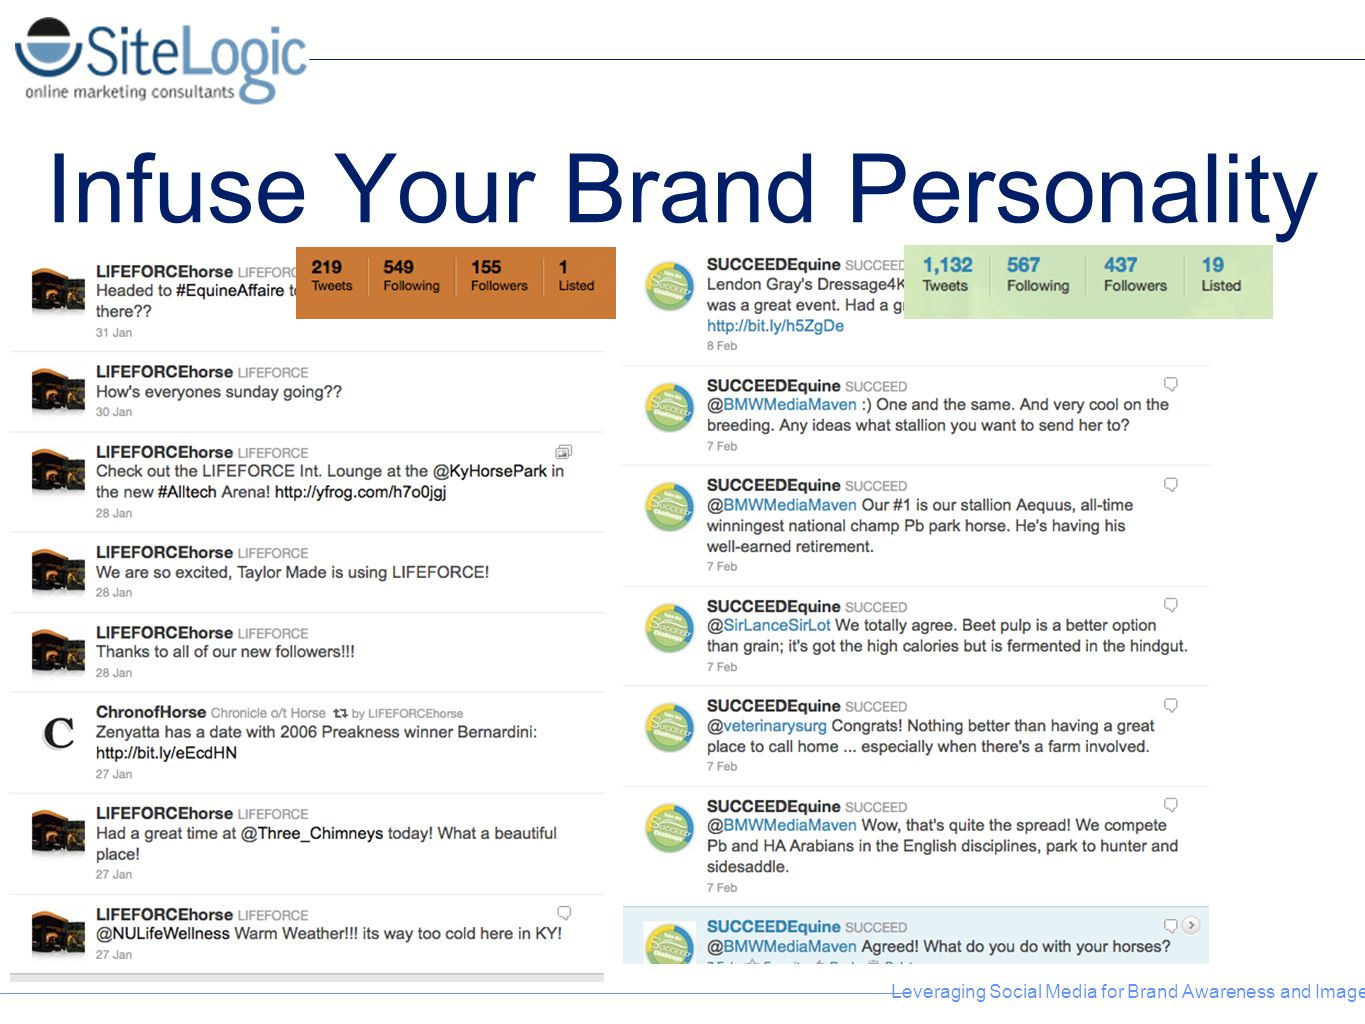 Leveraging Social Media for Brand Awareness and Image Infuse Your Brand Personality